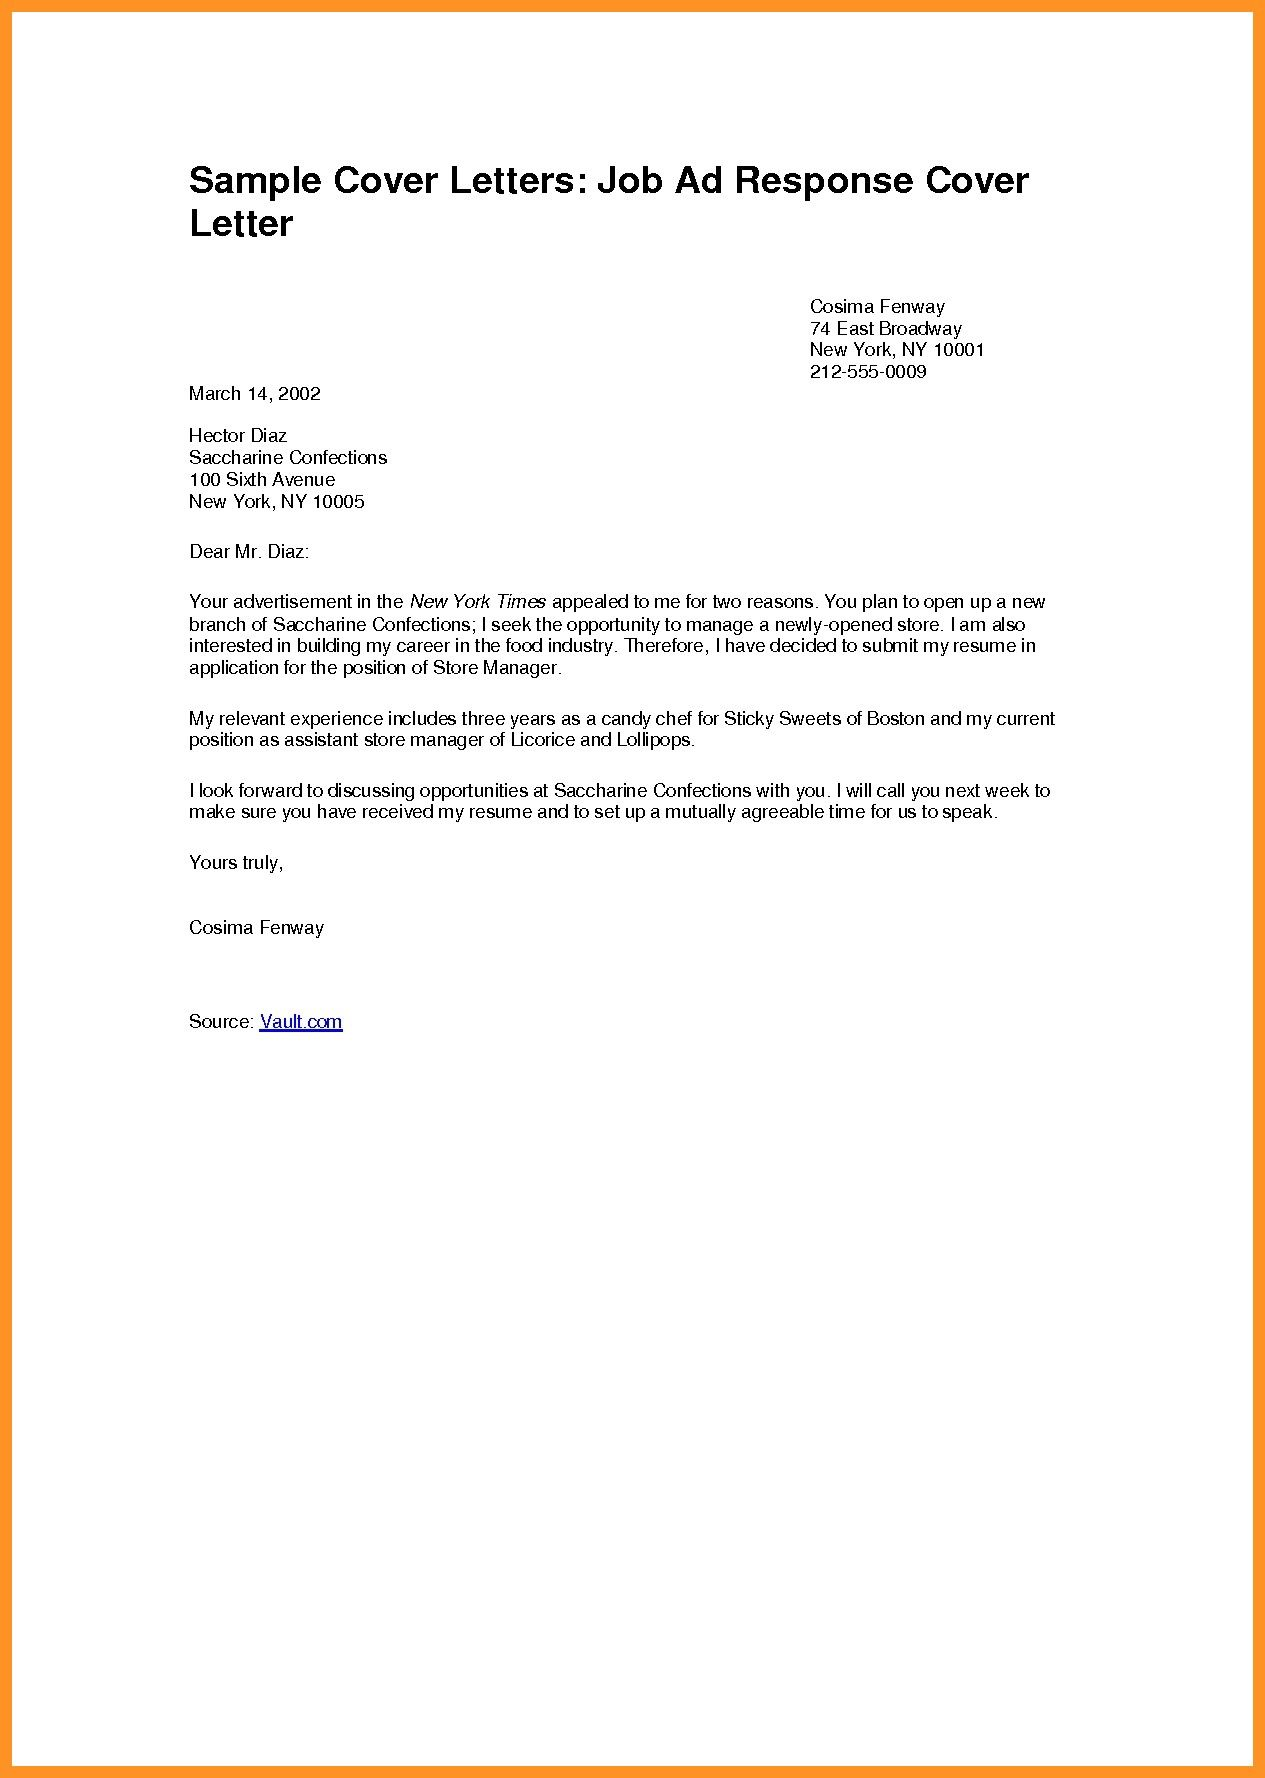 26 Cover Letter Sample Pdf  Cover Letter Sample Pdf Job